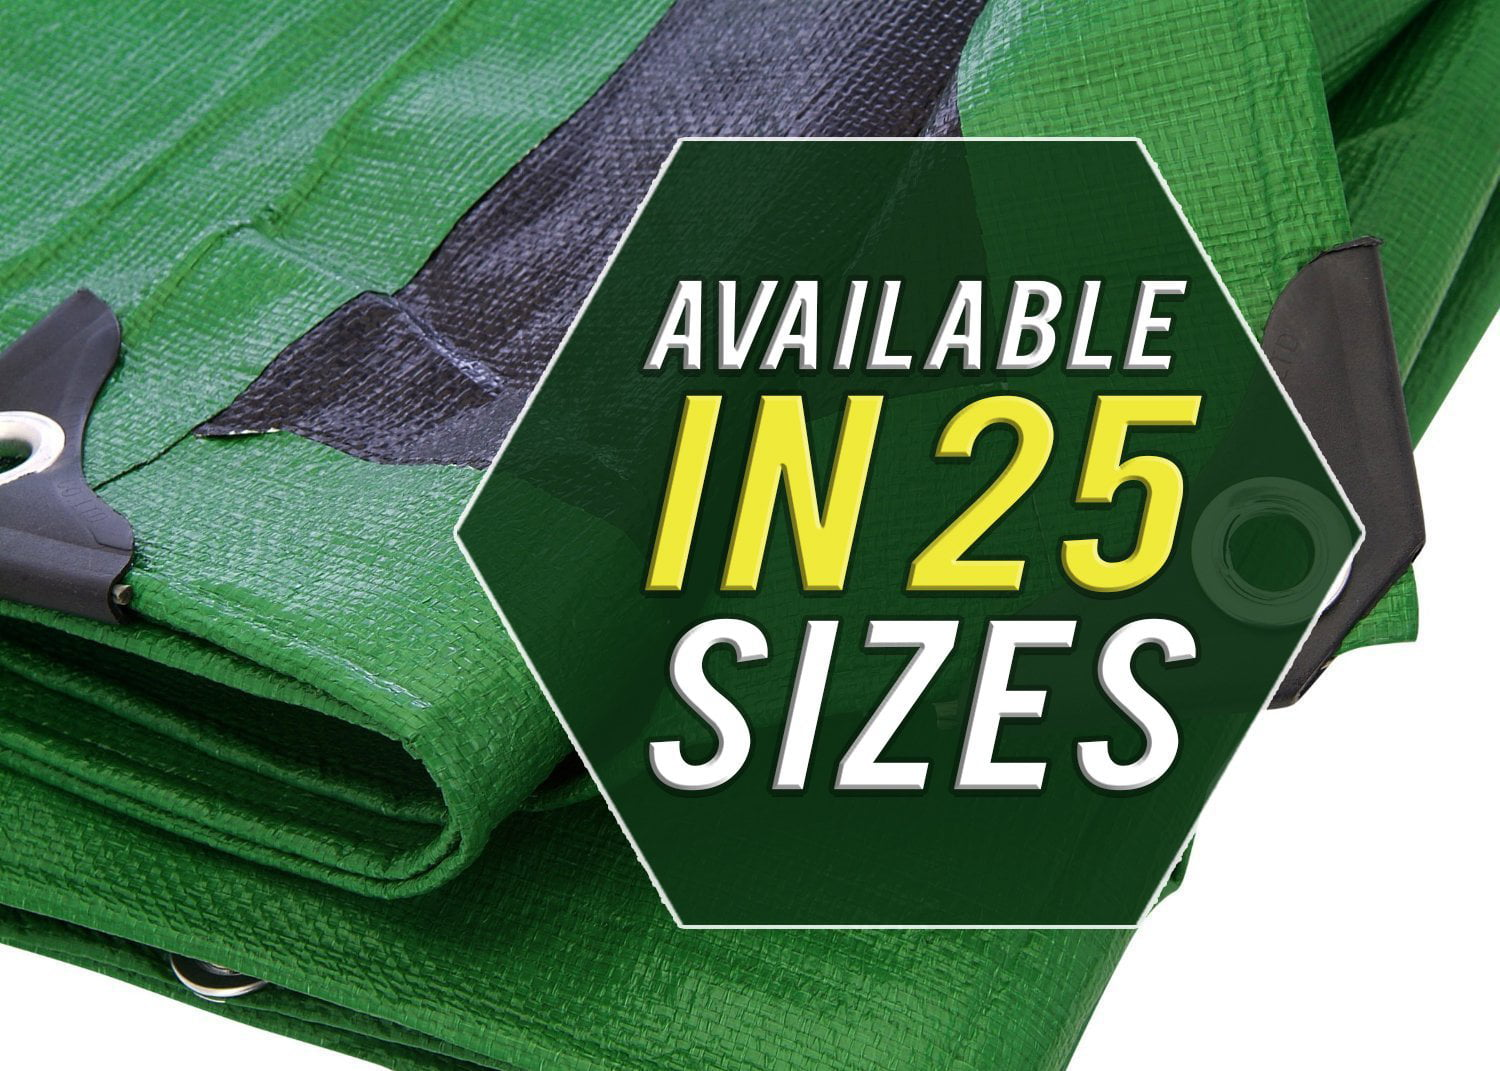 Waterproof Extra Heavy-Duty Tarp 6X8 Multi-Purpose Poly Tarpaulin with Aluminum Grommets Rot Rust and UV Resistant Cover Protector Shelter for Cars Boats Construction Contractors Campers 10 Mill